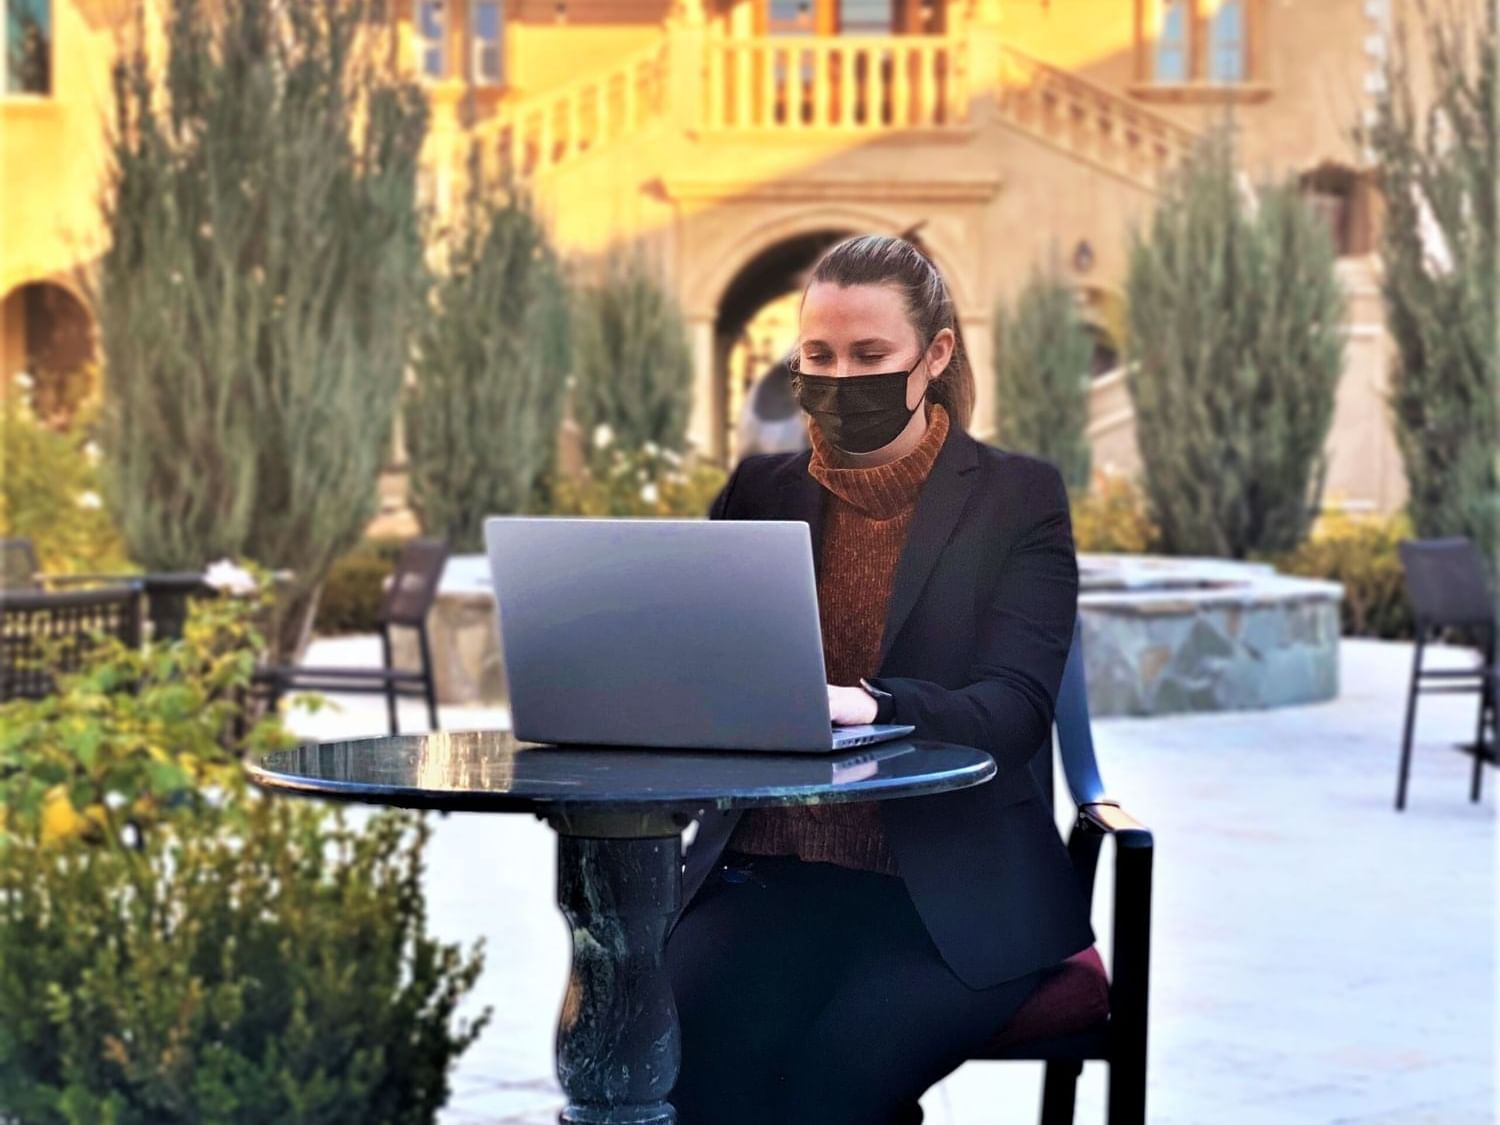 Woman with face mask sititng in terrace, working on laptop